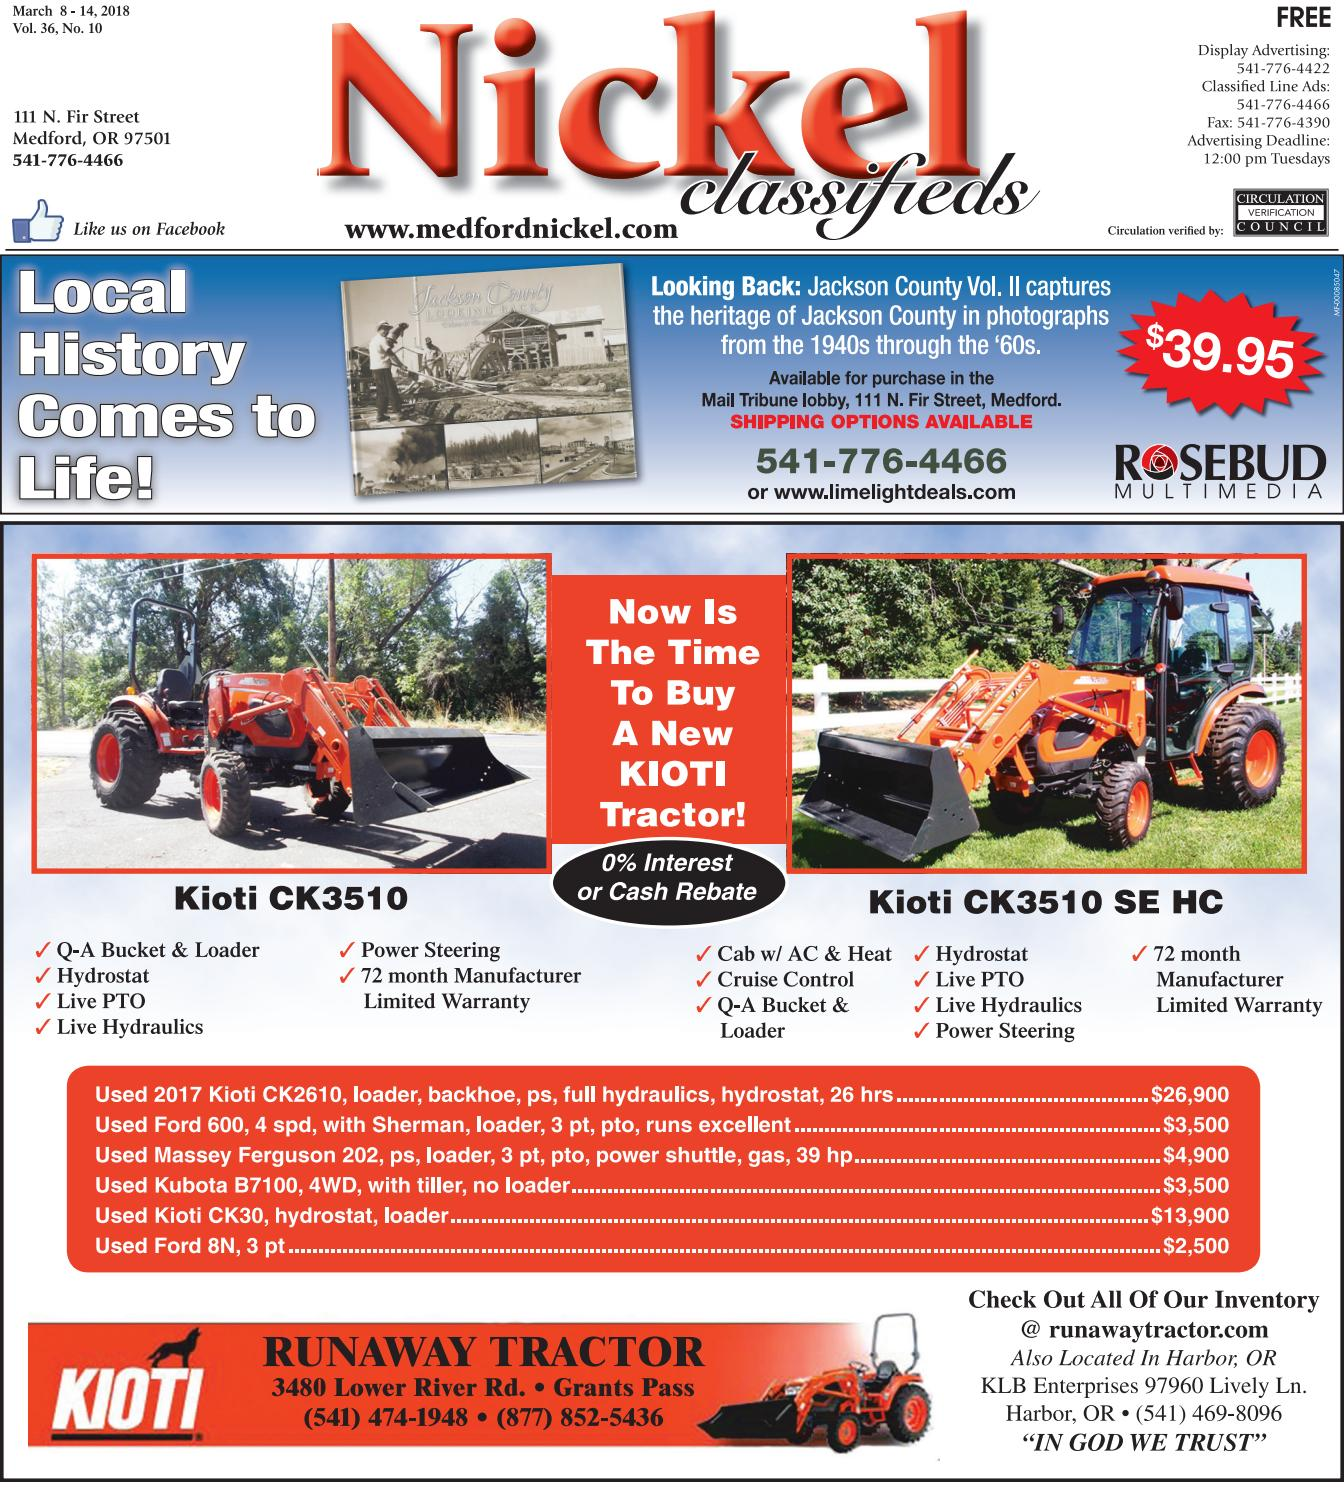 March 8, 2018 Nickel Classifieds by The Nickel - issuu